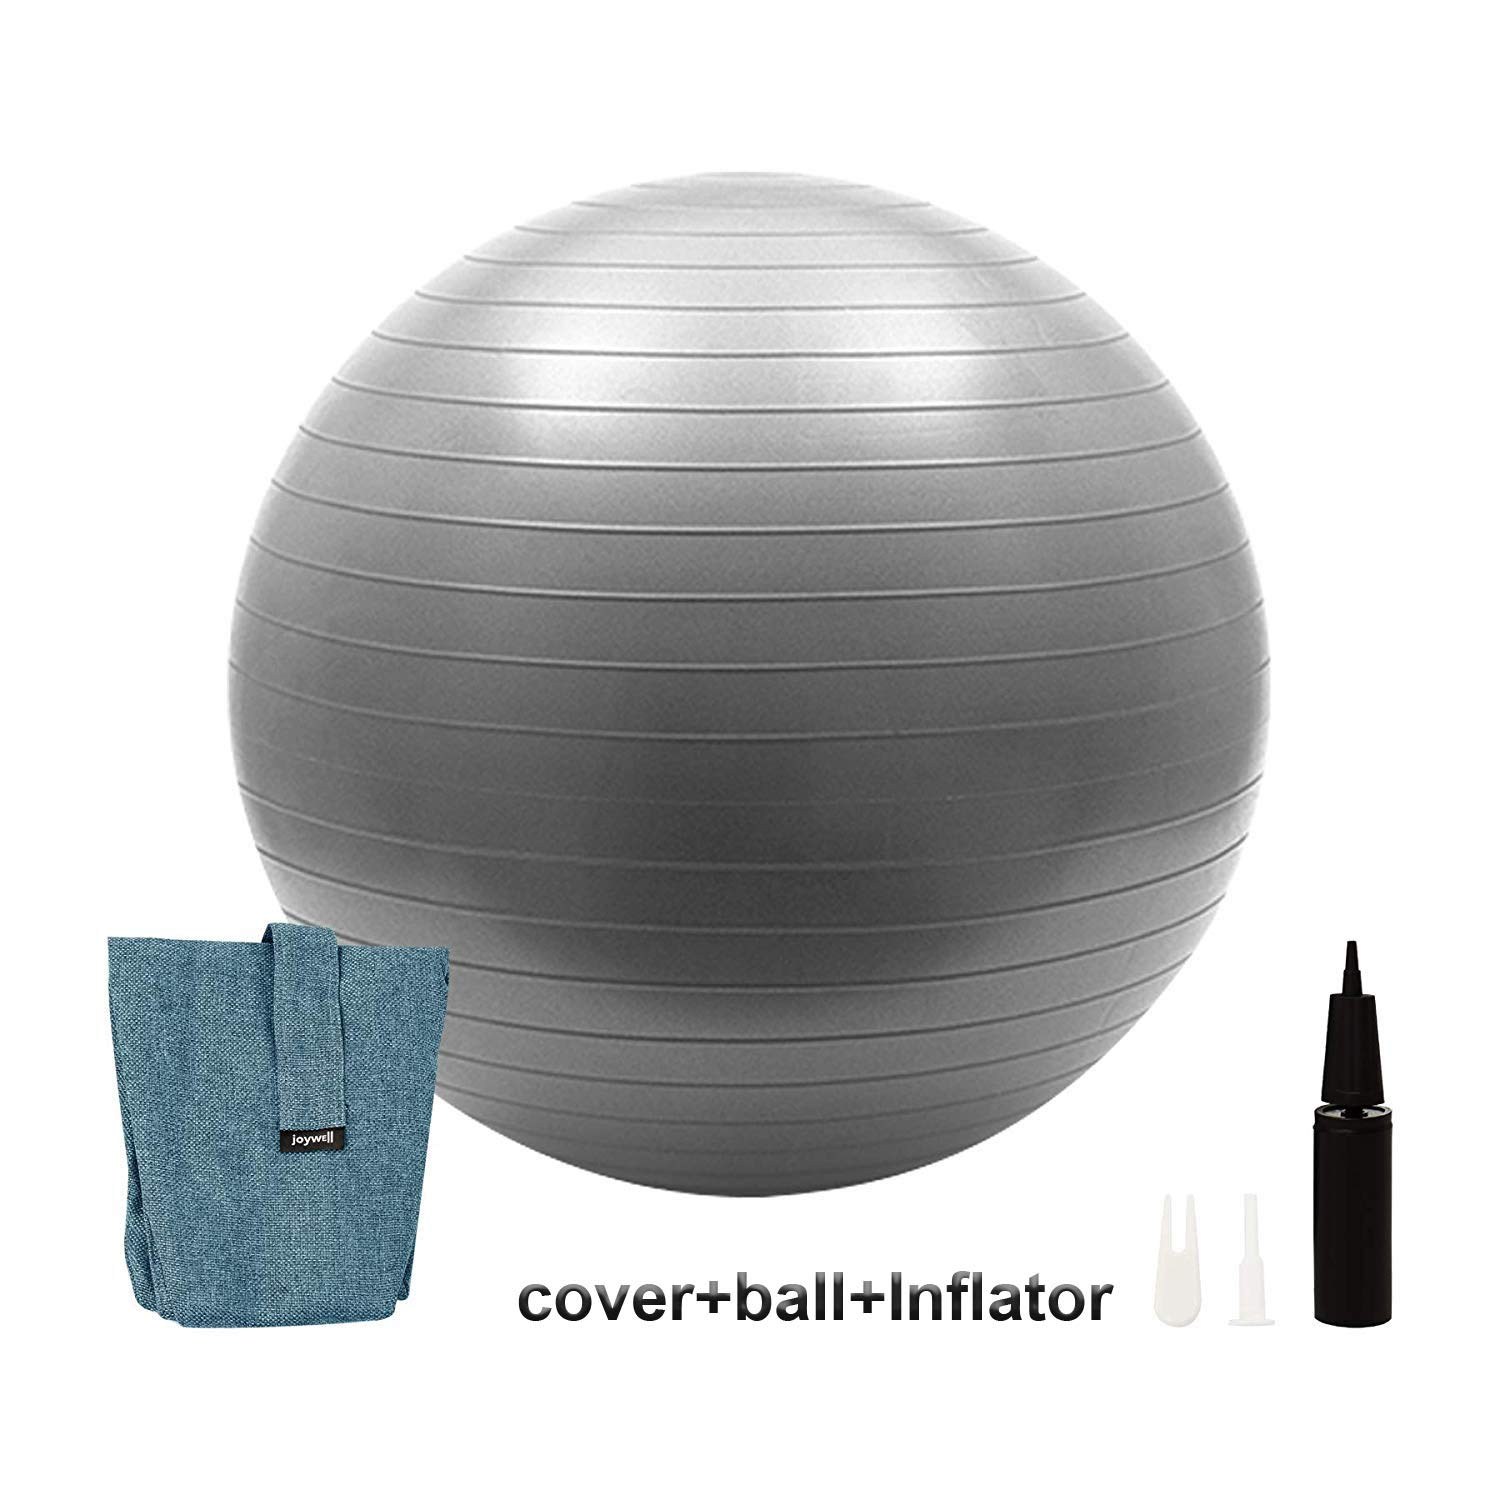 Joywell Handle for Home, Pilates, Yoga, Includes Exercise Ball with Pump Multi Function Foldable Storage Birthing Ball with forFitness,Classroom Flexible Seating - Anti Burst Ball for Yoga, (65,Blue)